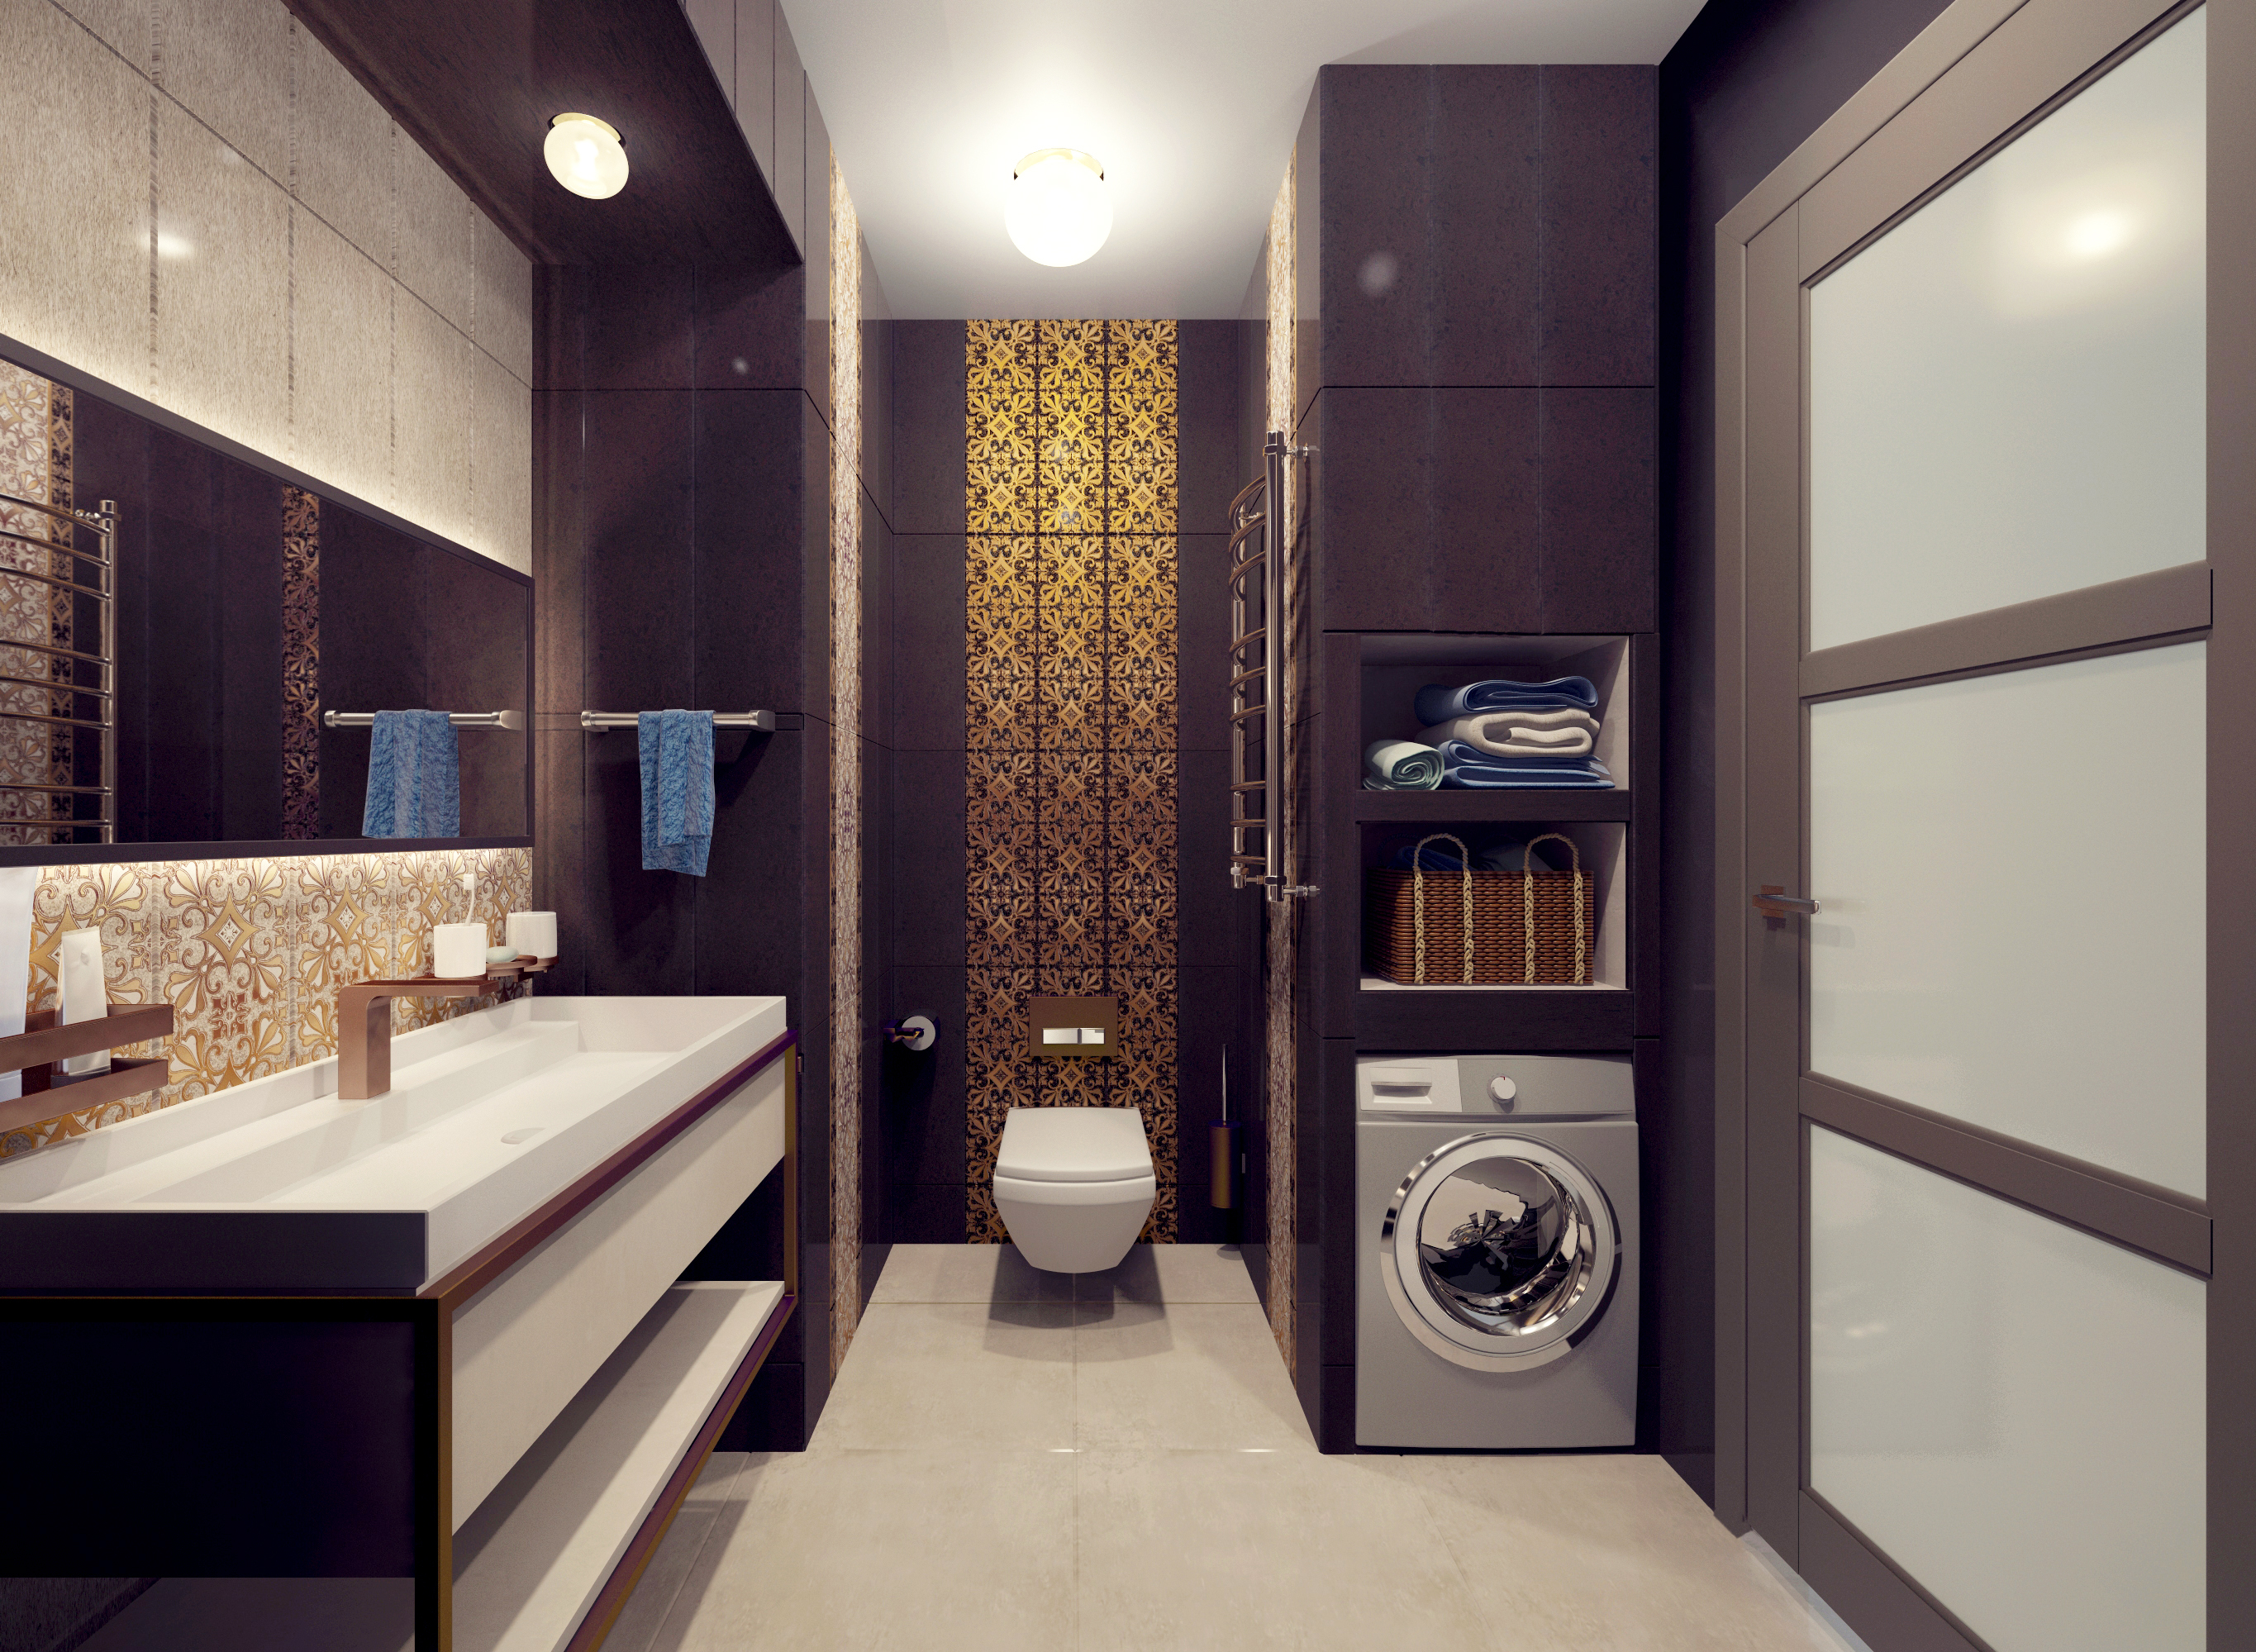 Bathroom in 3d max vray 2.5 image